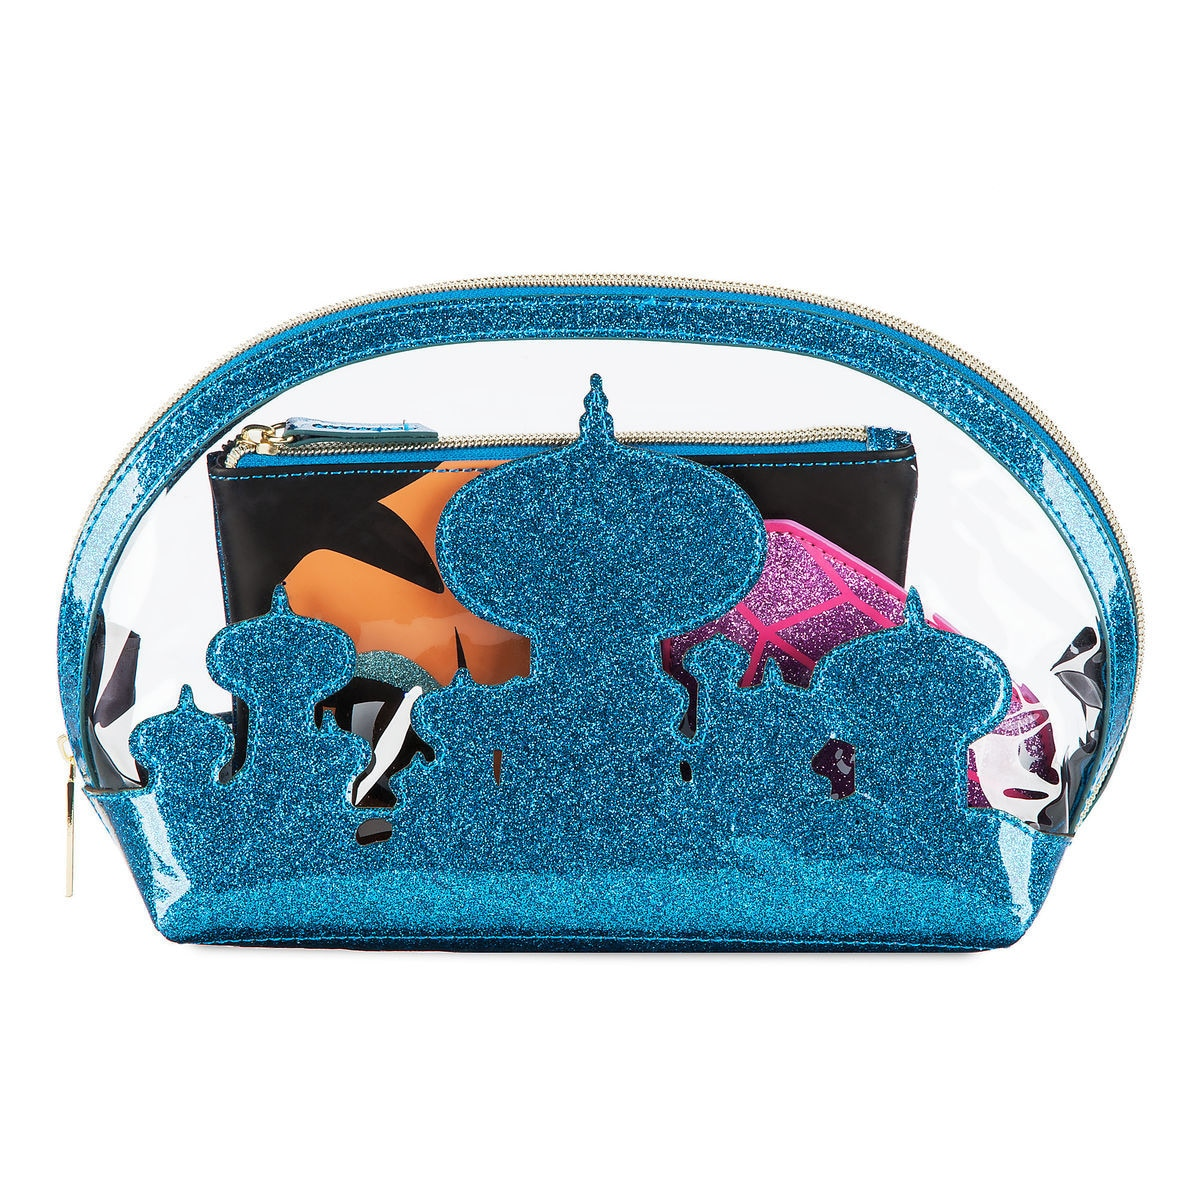 Product Image Of Jasmine Cosmetic Bag Set For S By Danielle Nicole 1